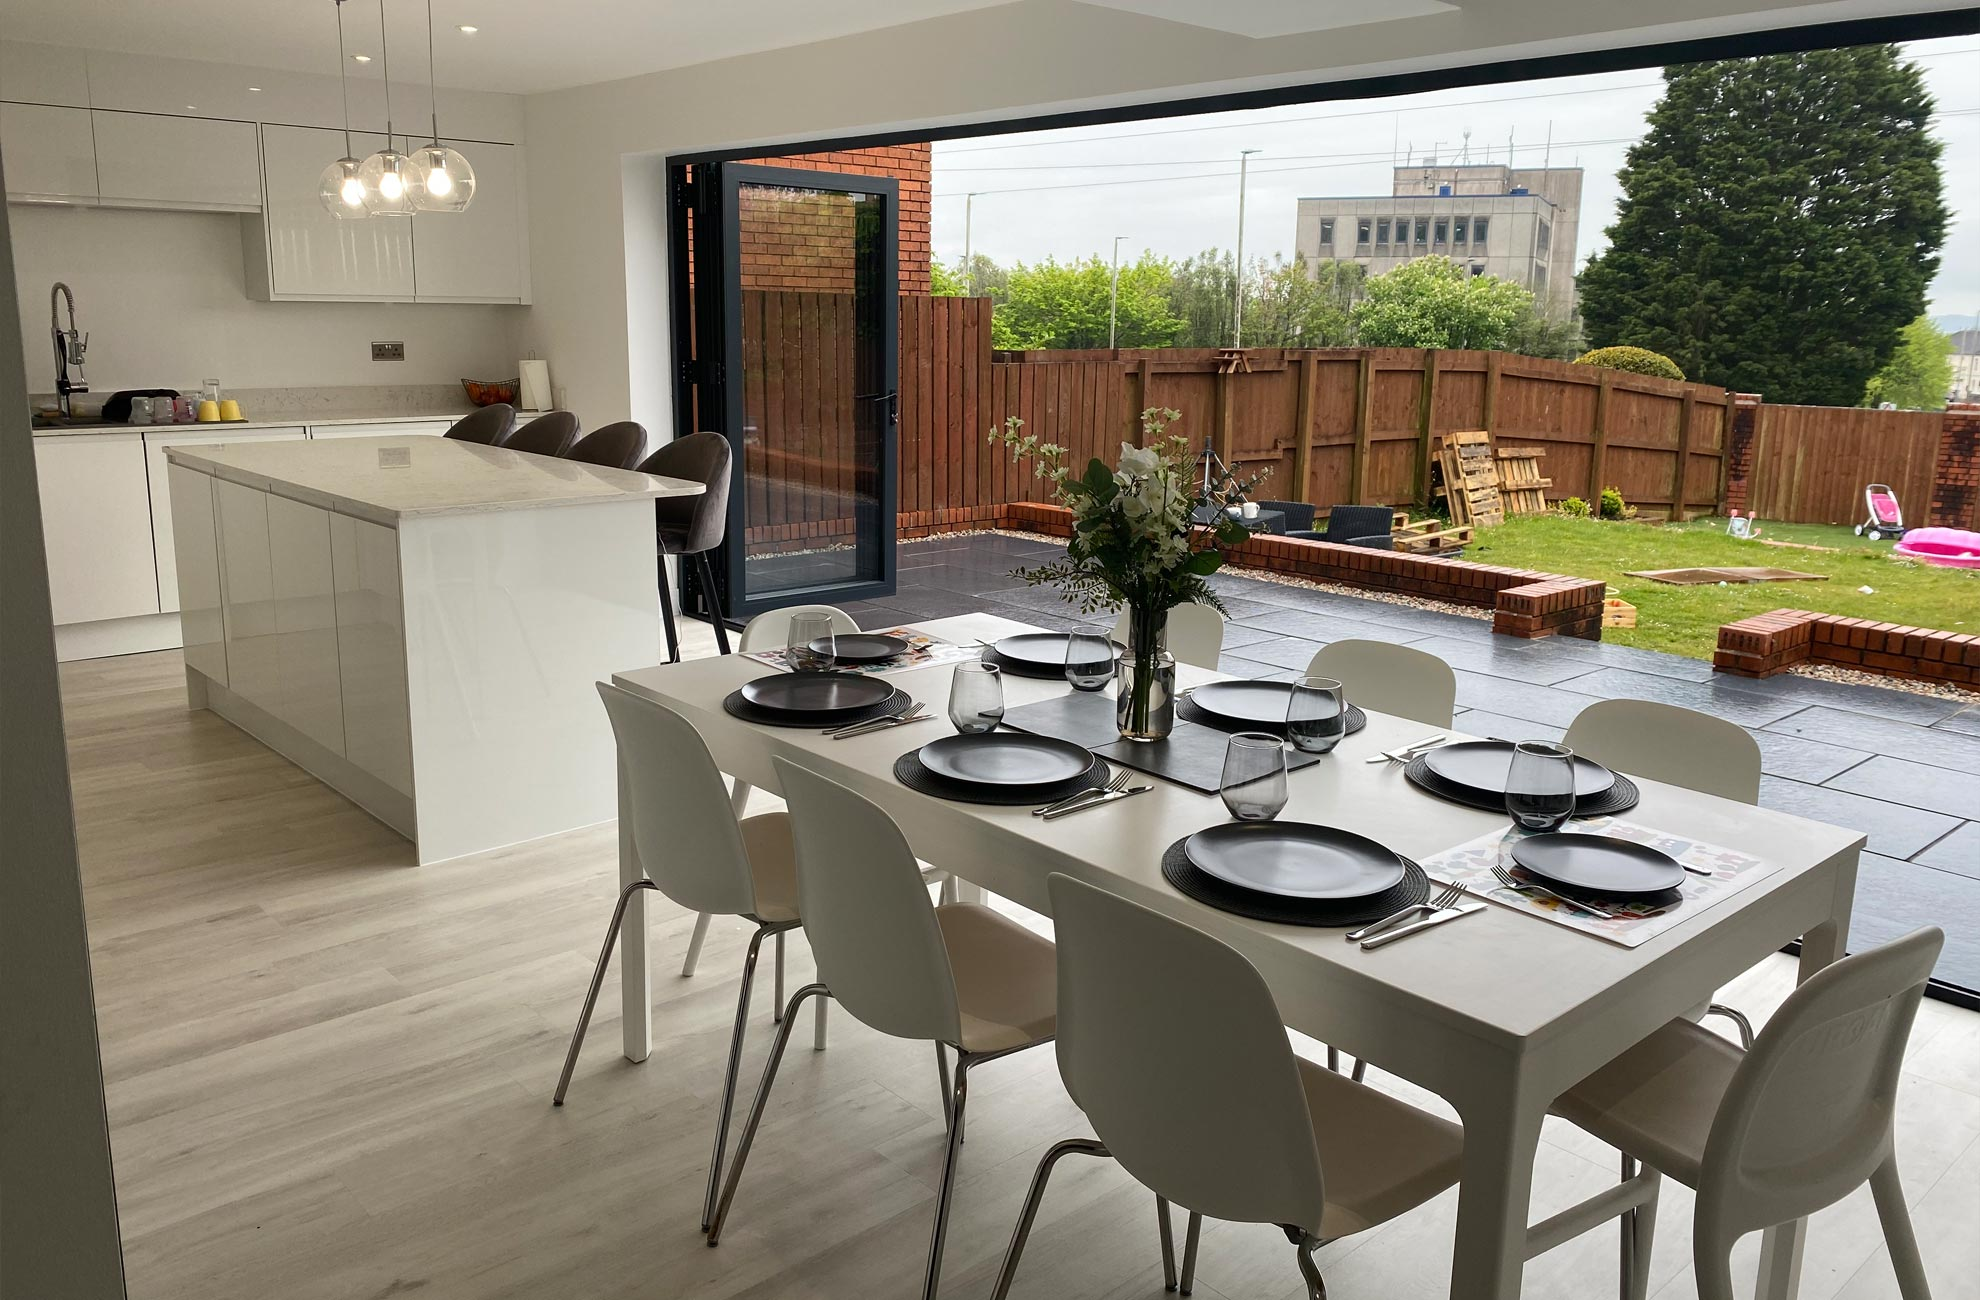 Magnify Construction Building Extensions Ground Works Gardens Kitchen Fitting